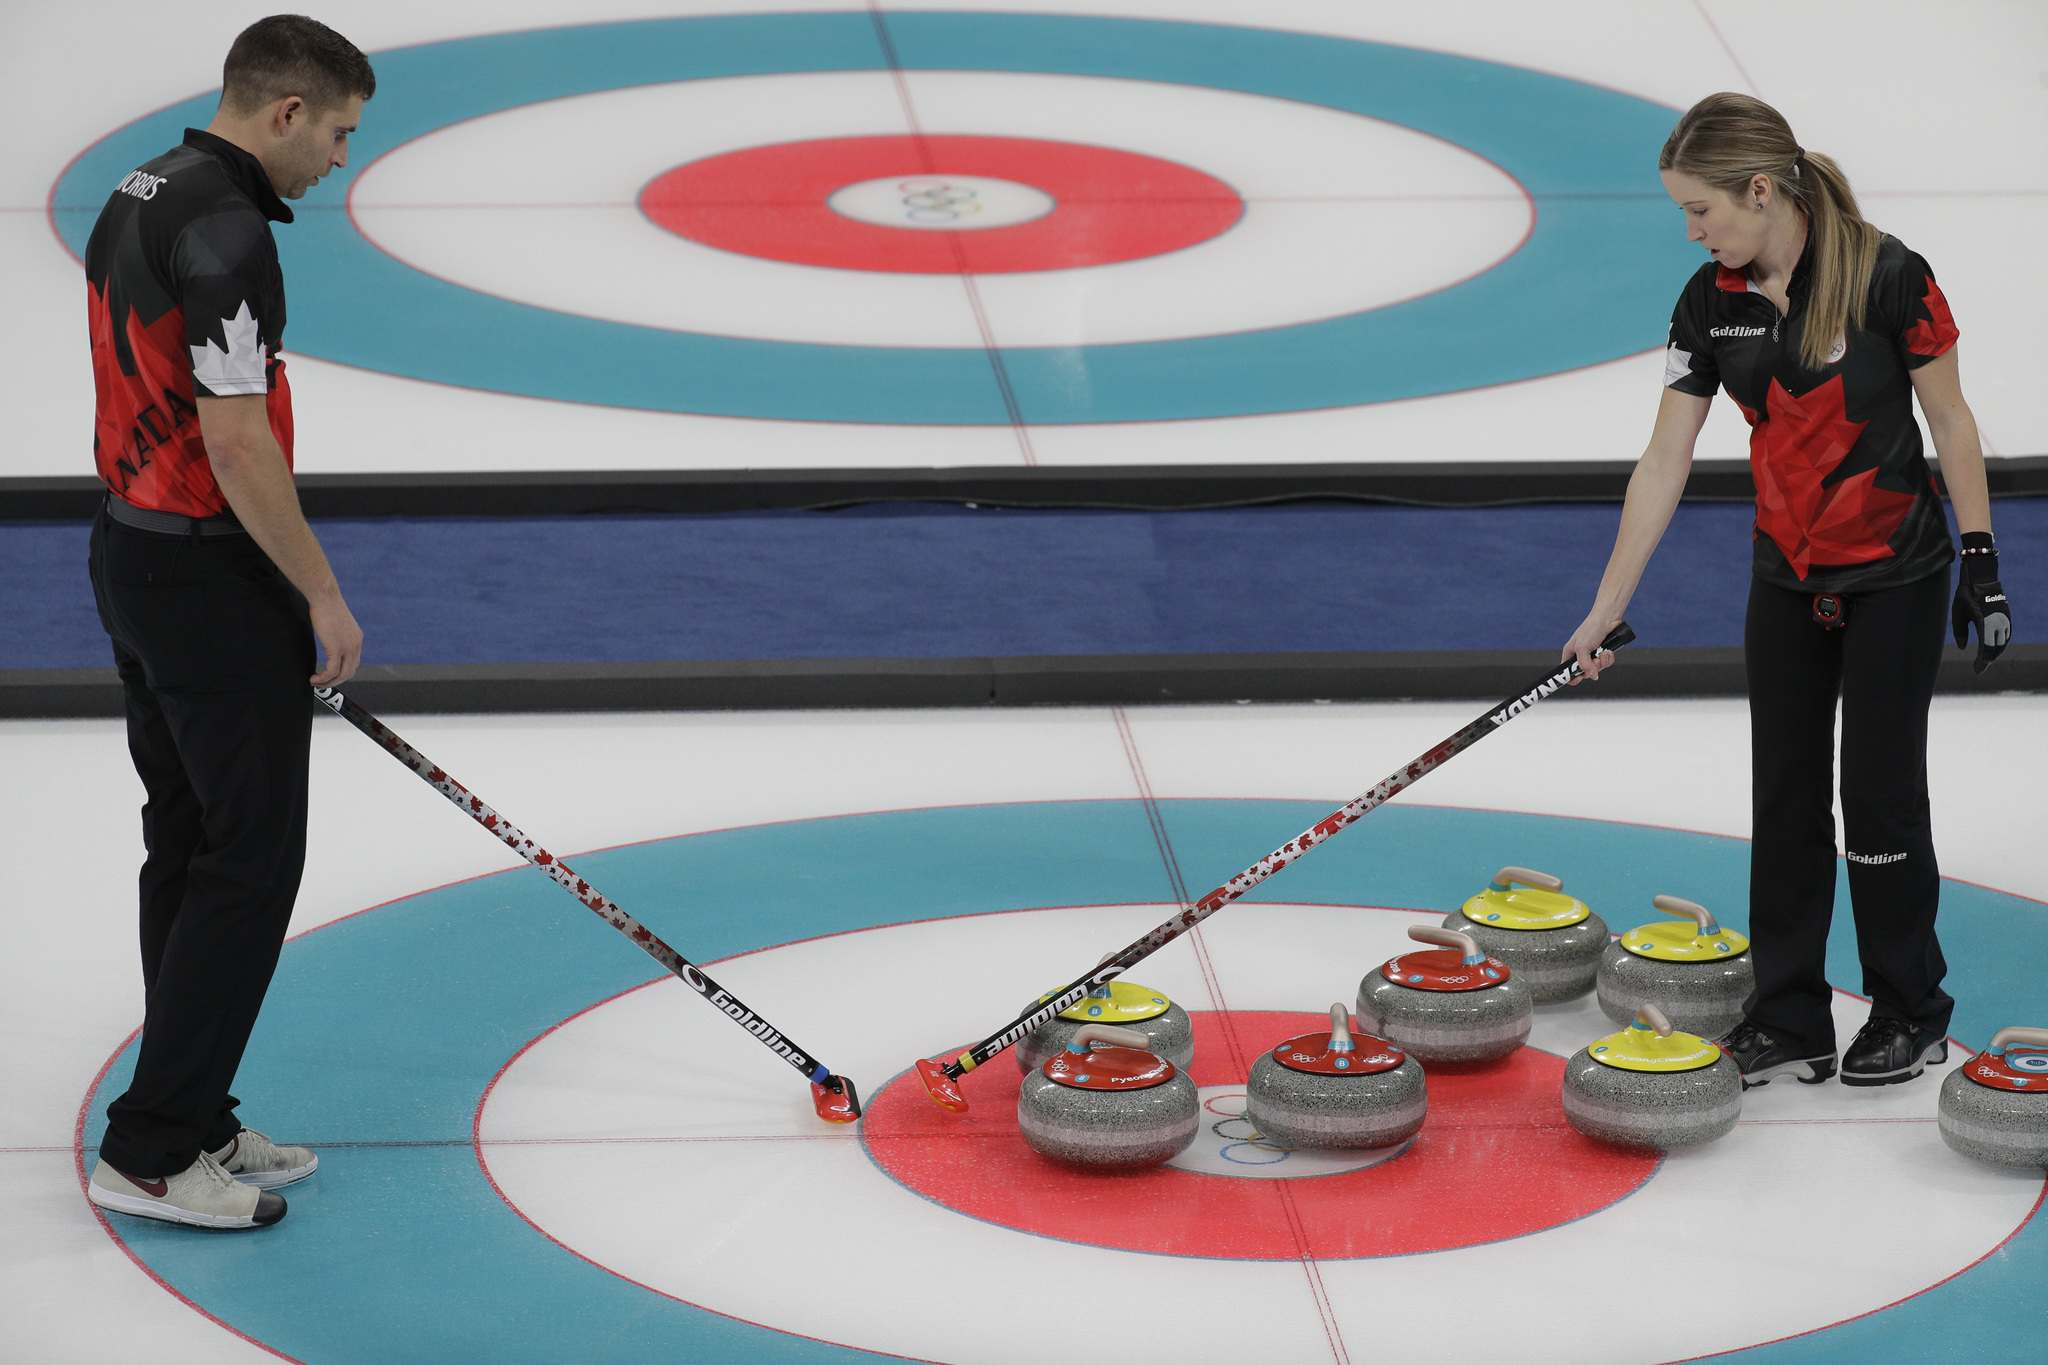 Team canada taking doubles curling strategy at the 2018 olympic games in Pyeongchang